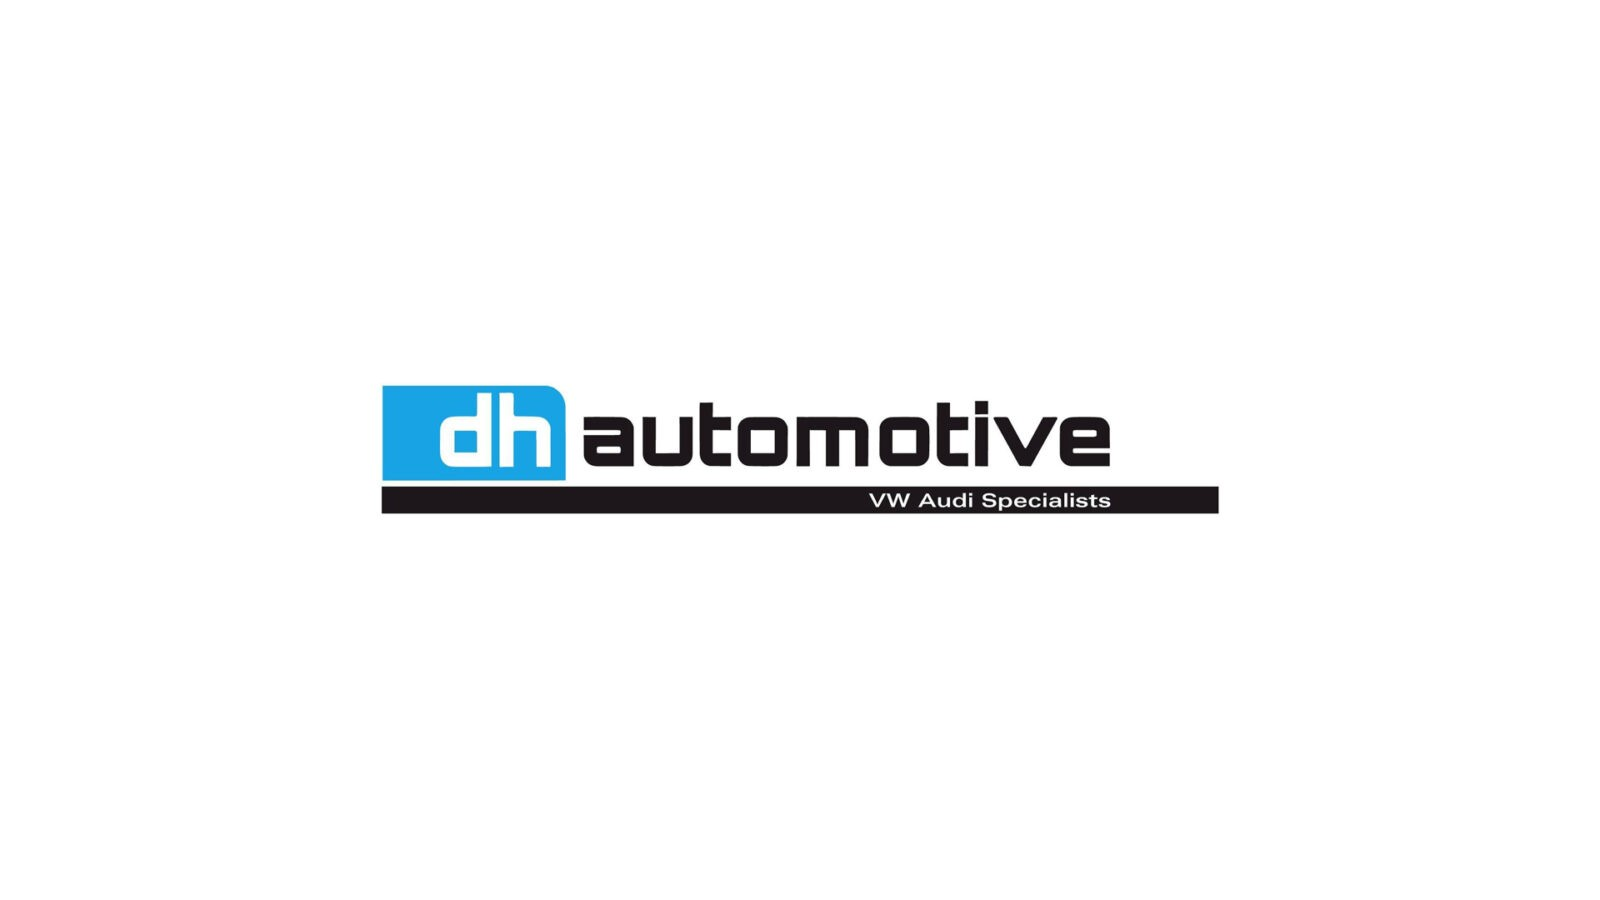 DH Automotive